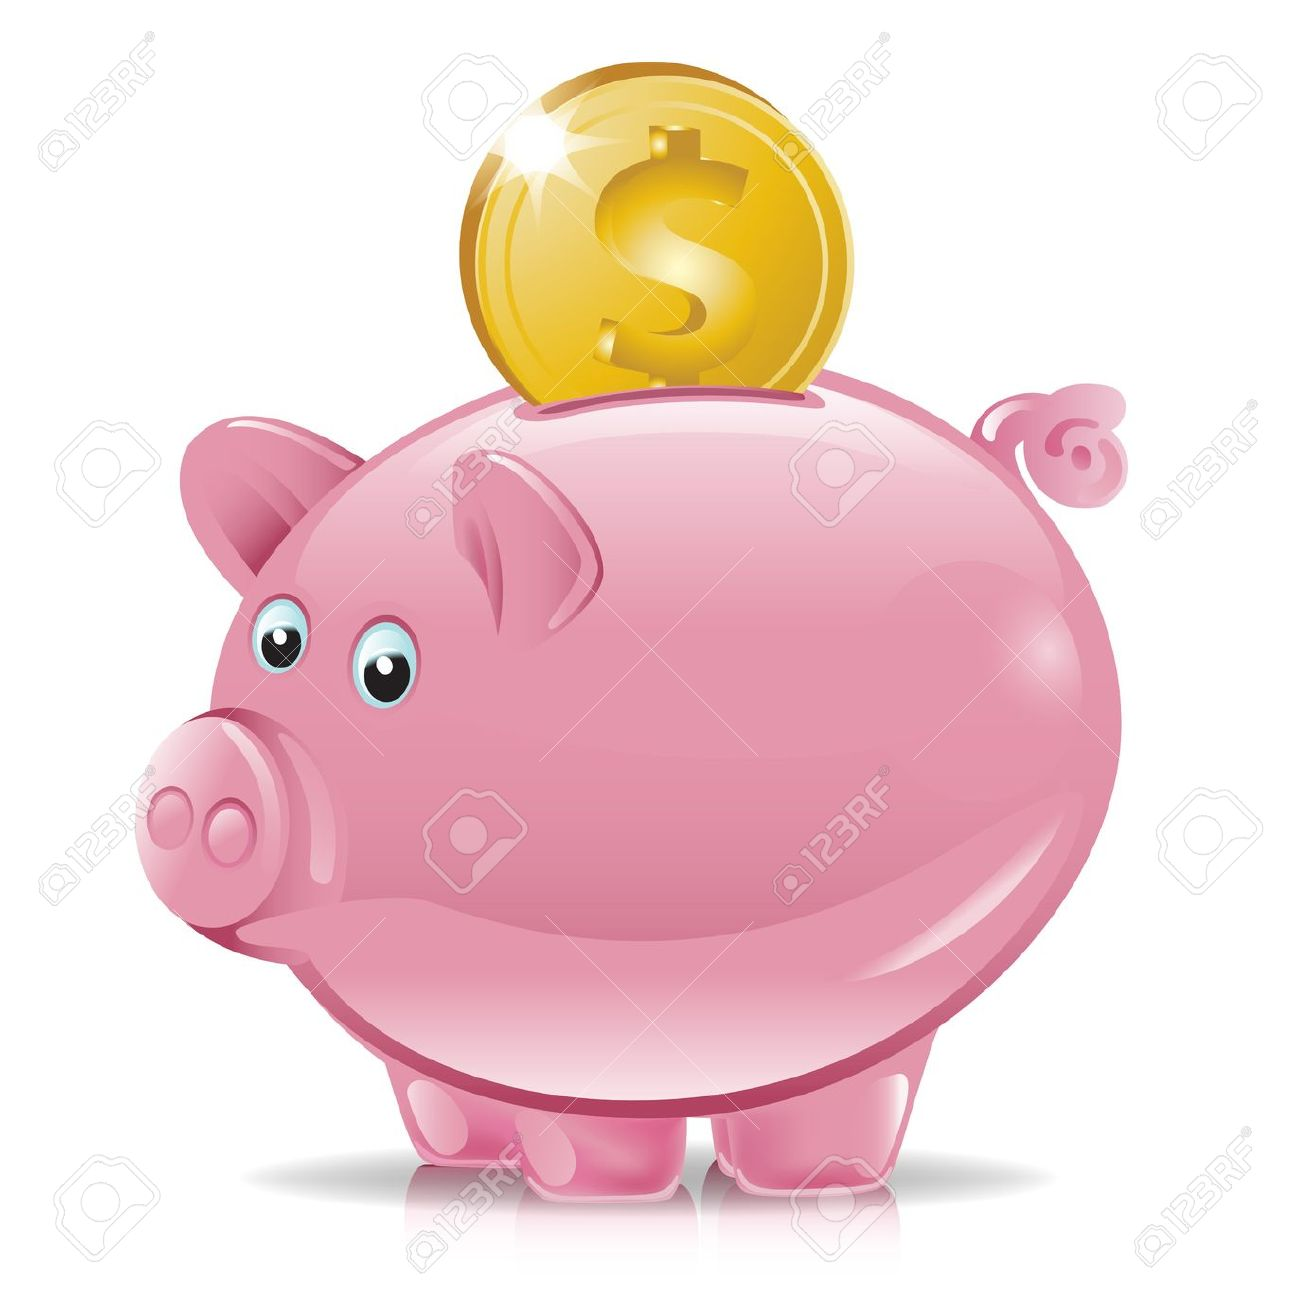 Banks clipartfest with . Cute piggy bank clipart